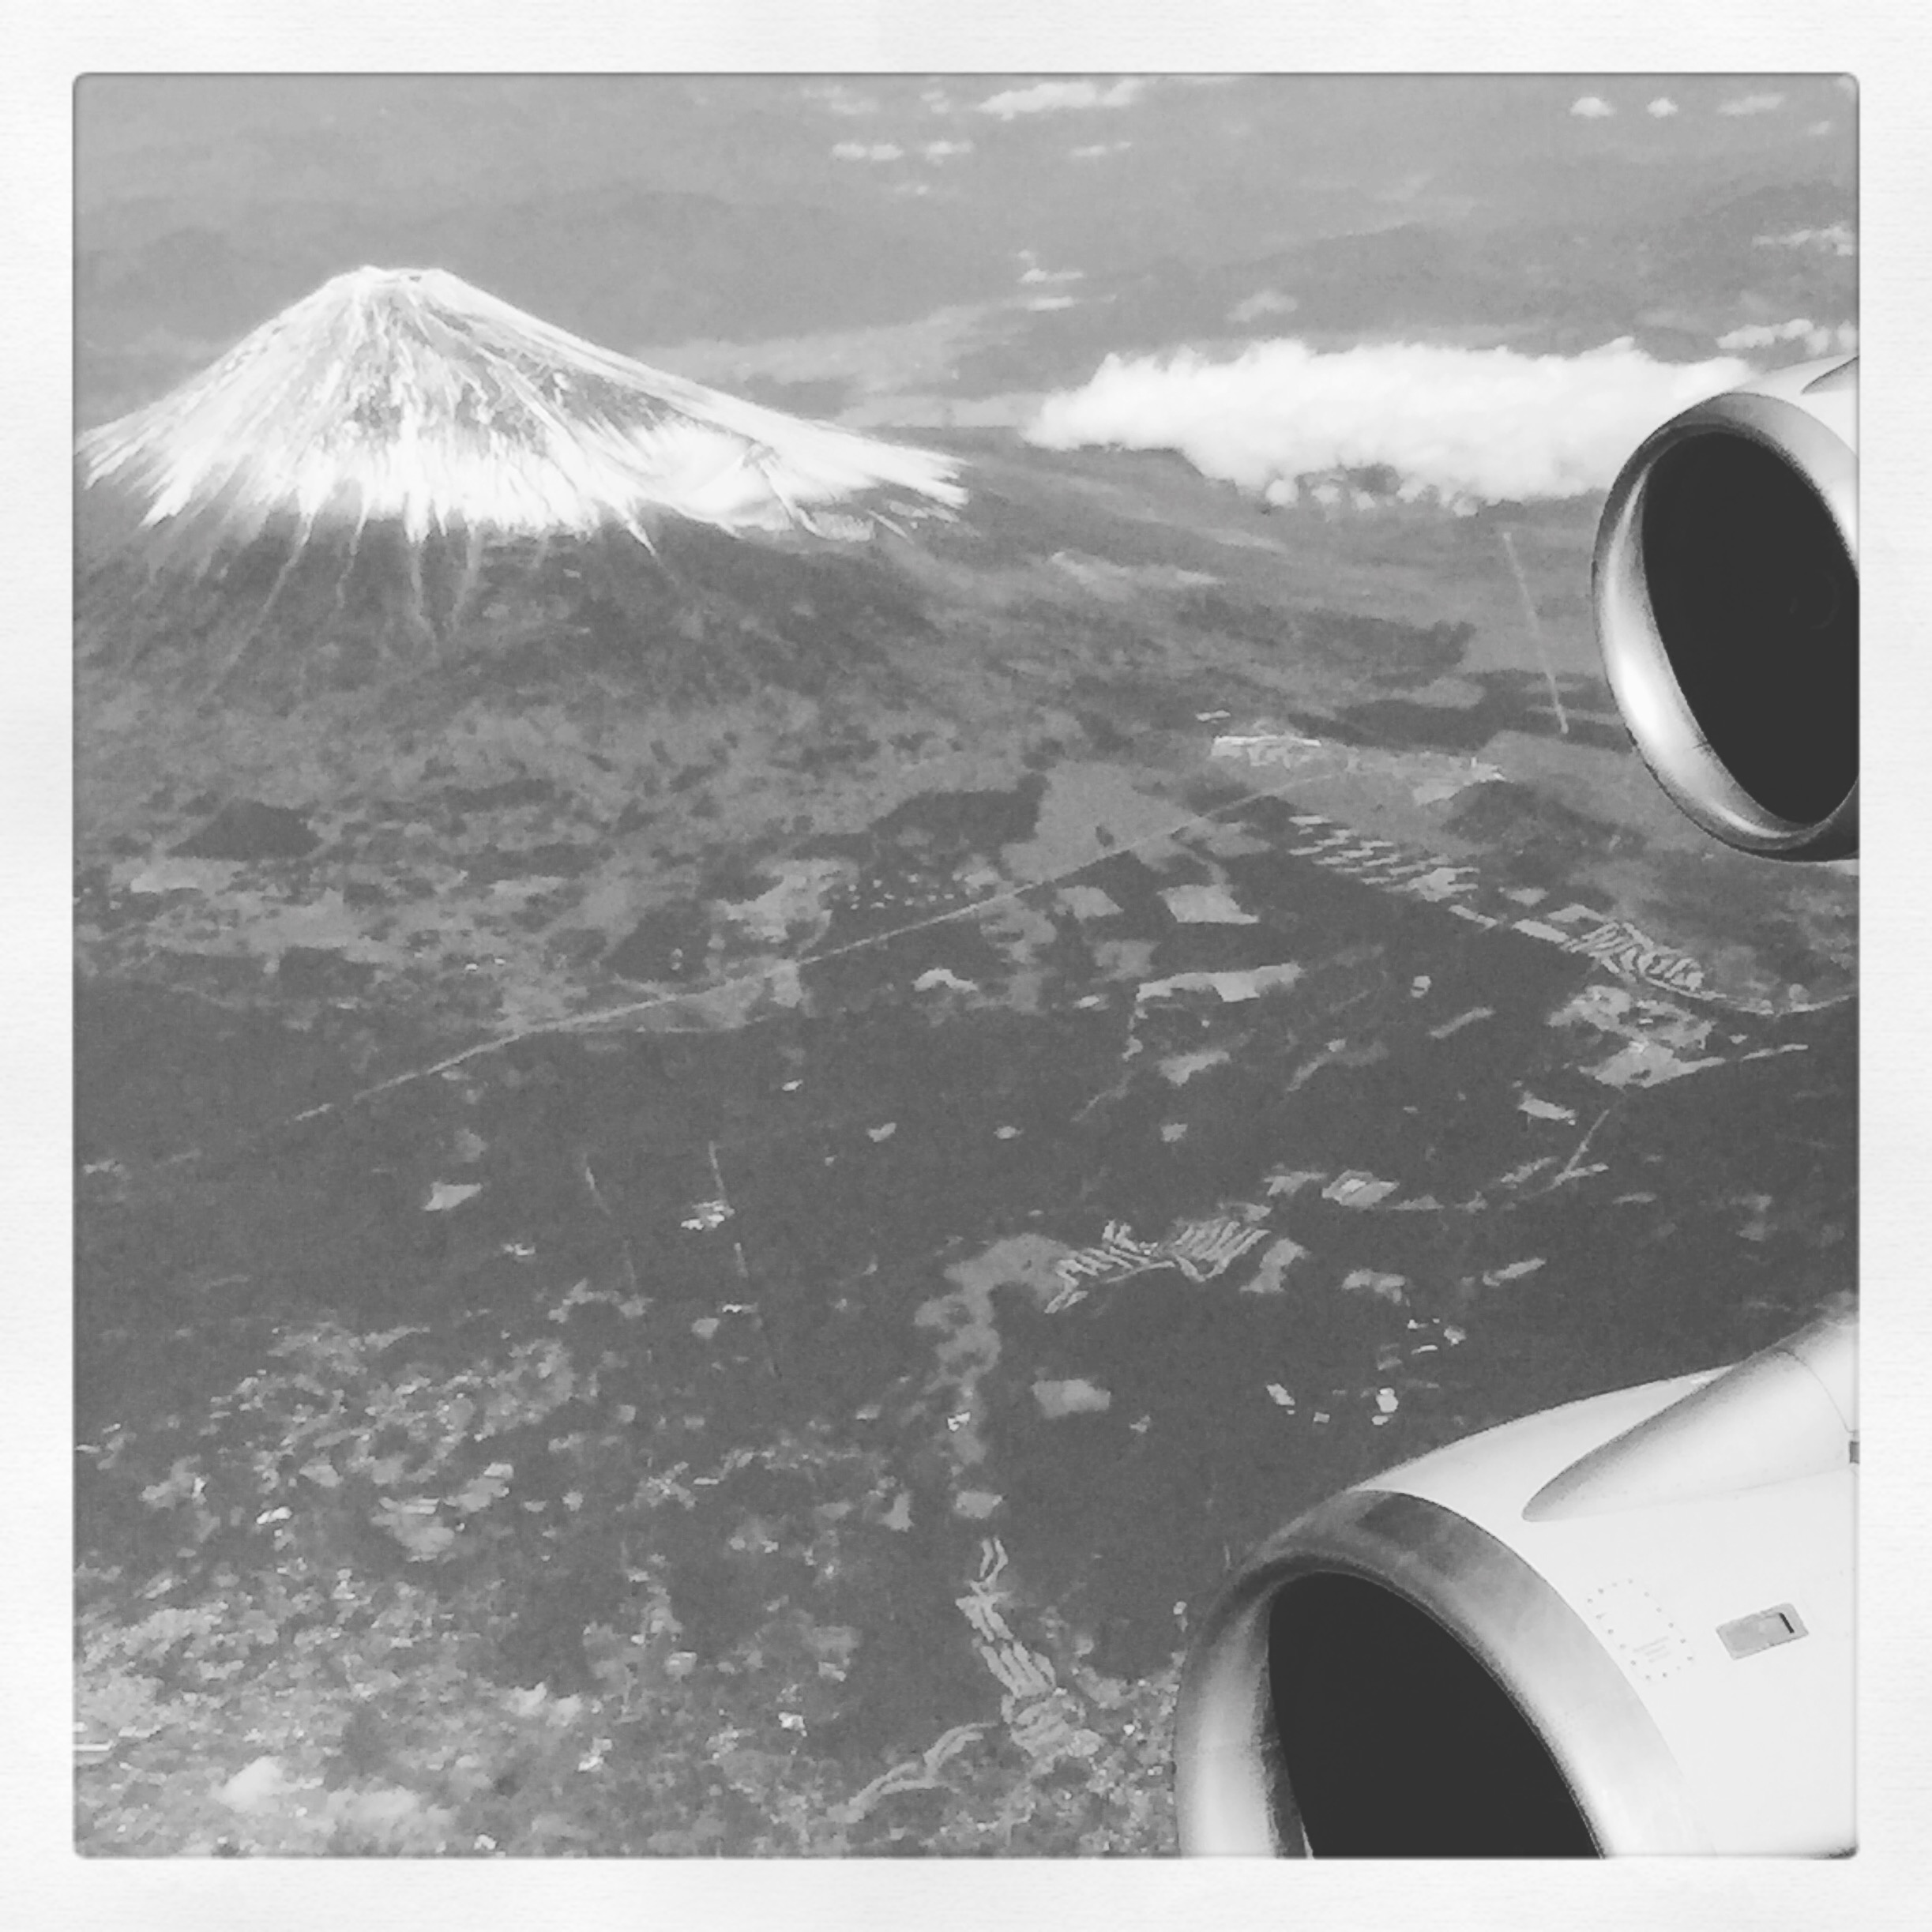 Perfect view to finish off the Tokyo trip: Mt. Fuji and Boeing 747 engines while climbing out of Tokyo-Haneda airport.